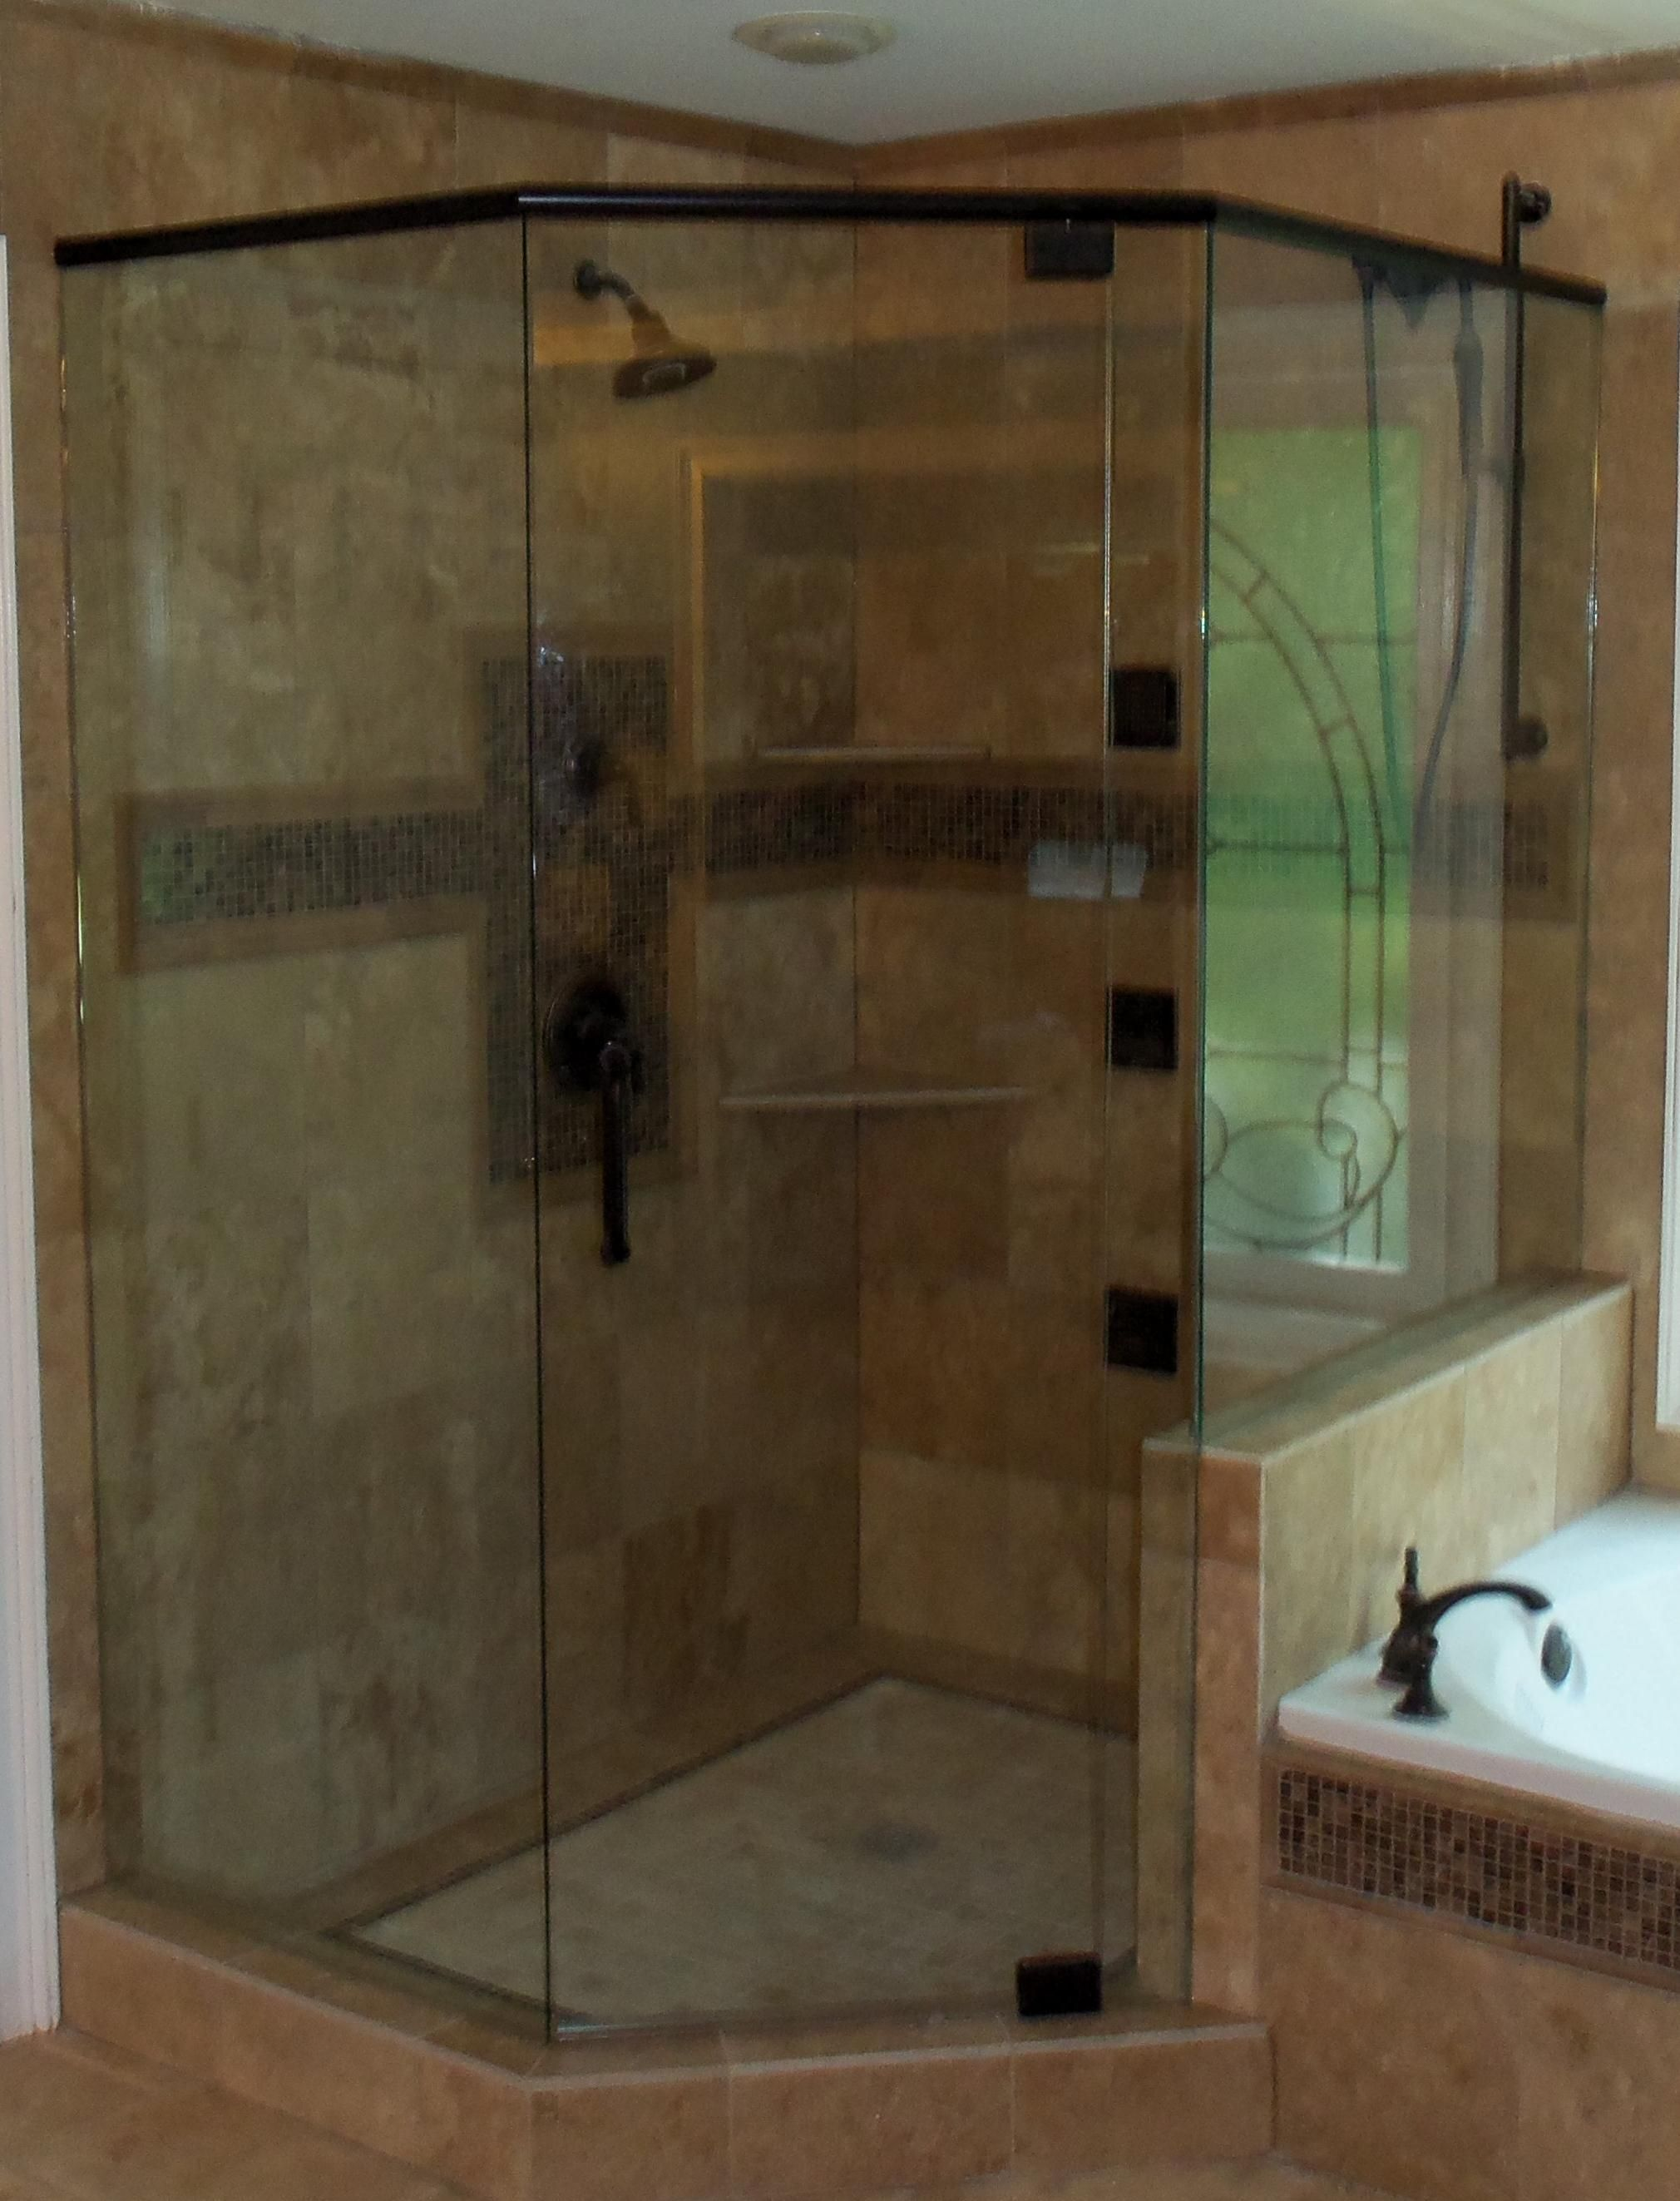 Cozy Bathroom With Delightful Neo Angle Shower: Bathtub With Bath ...